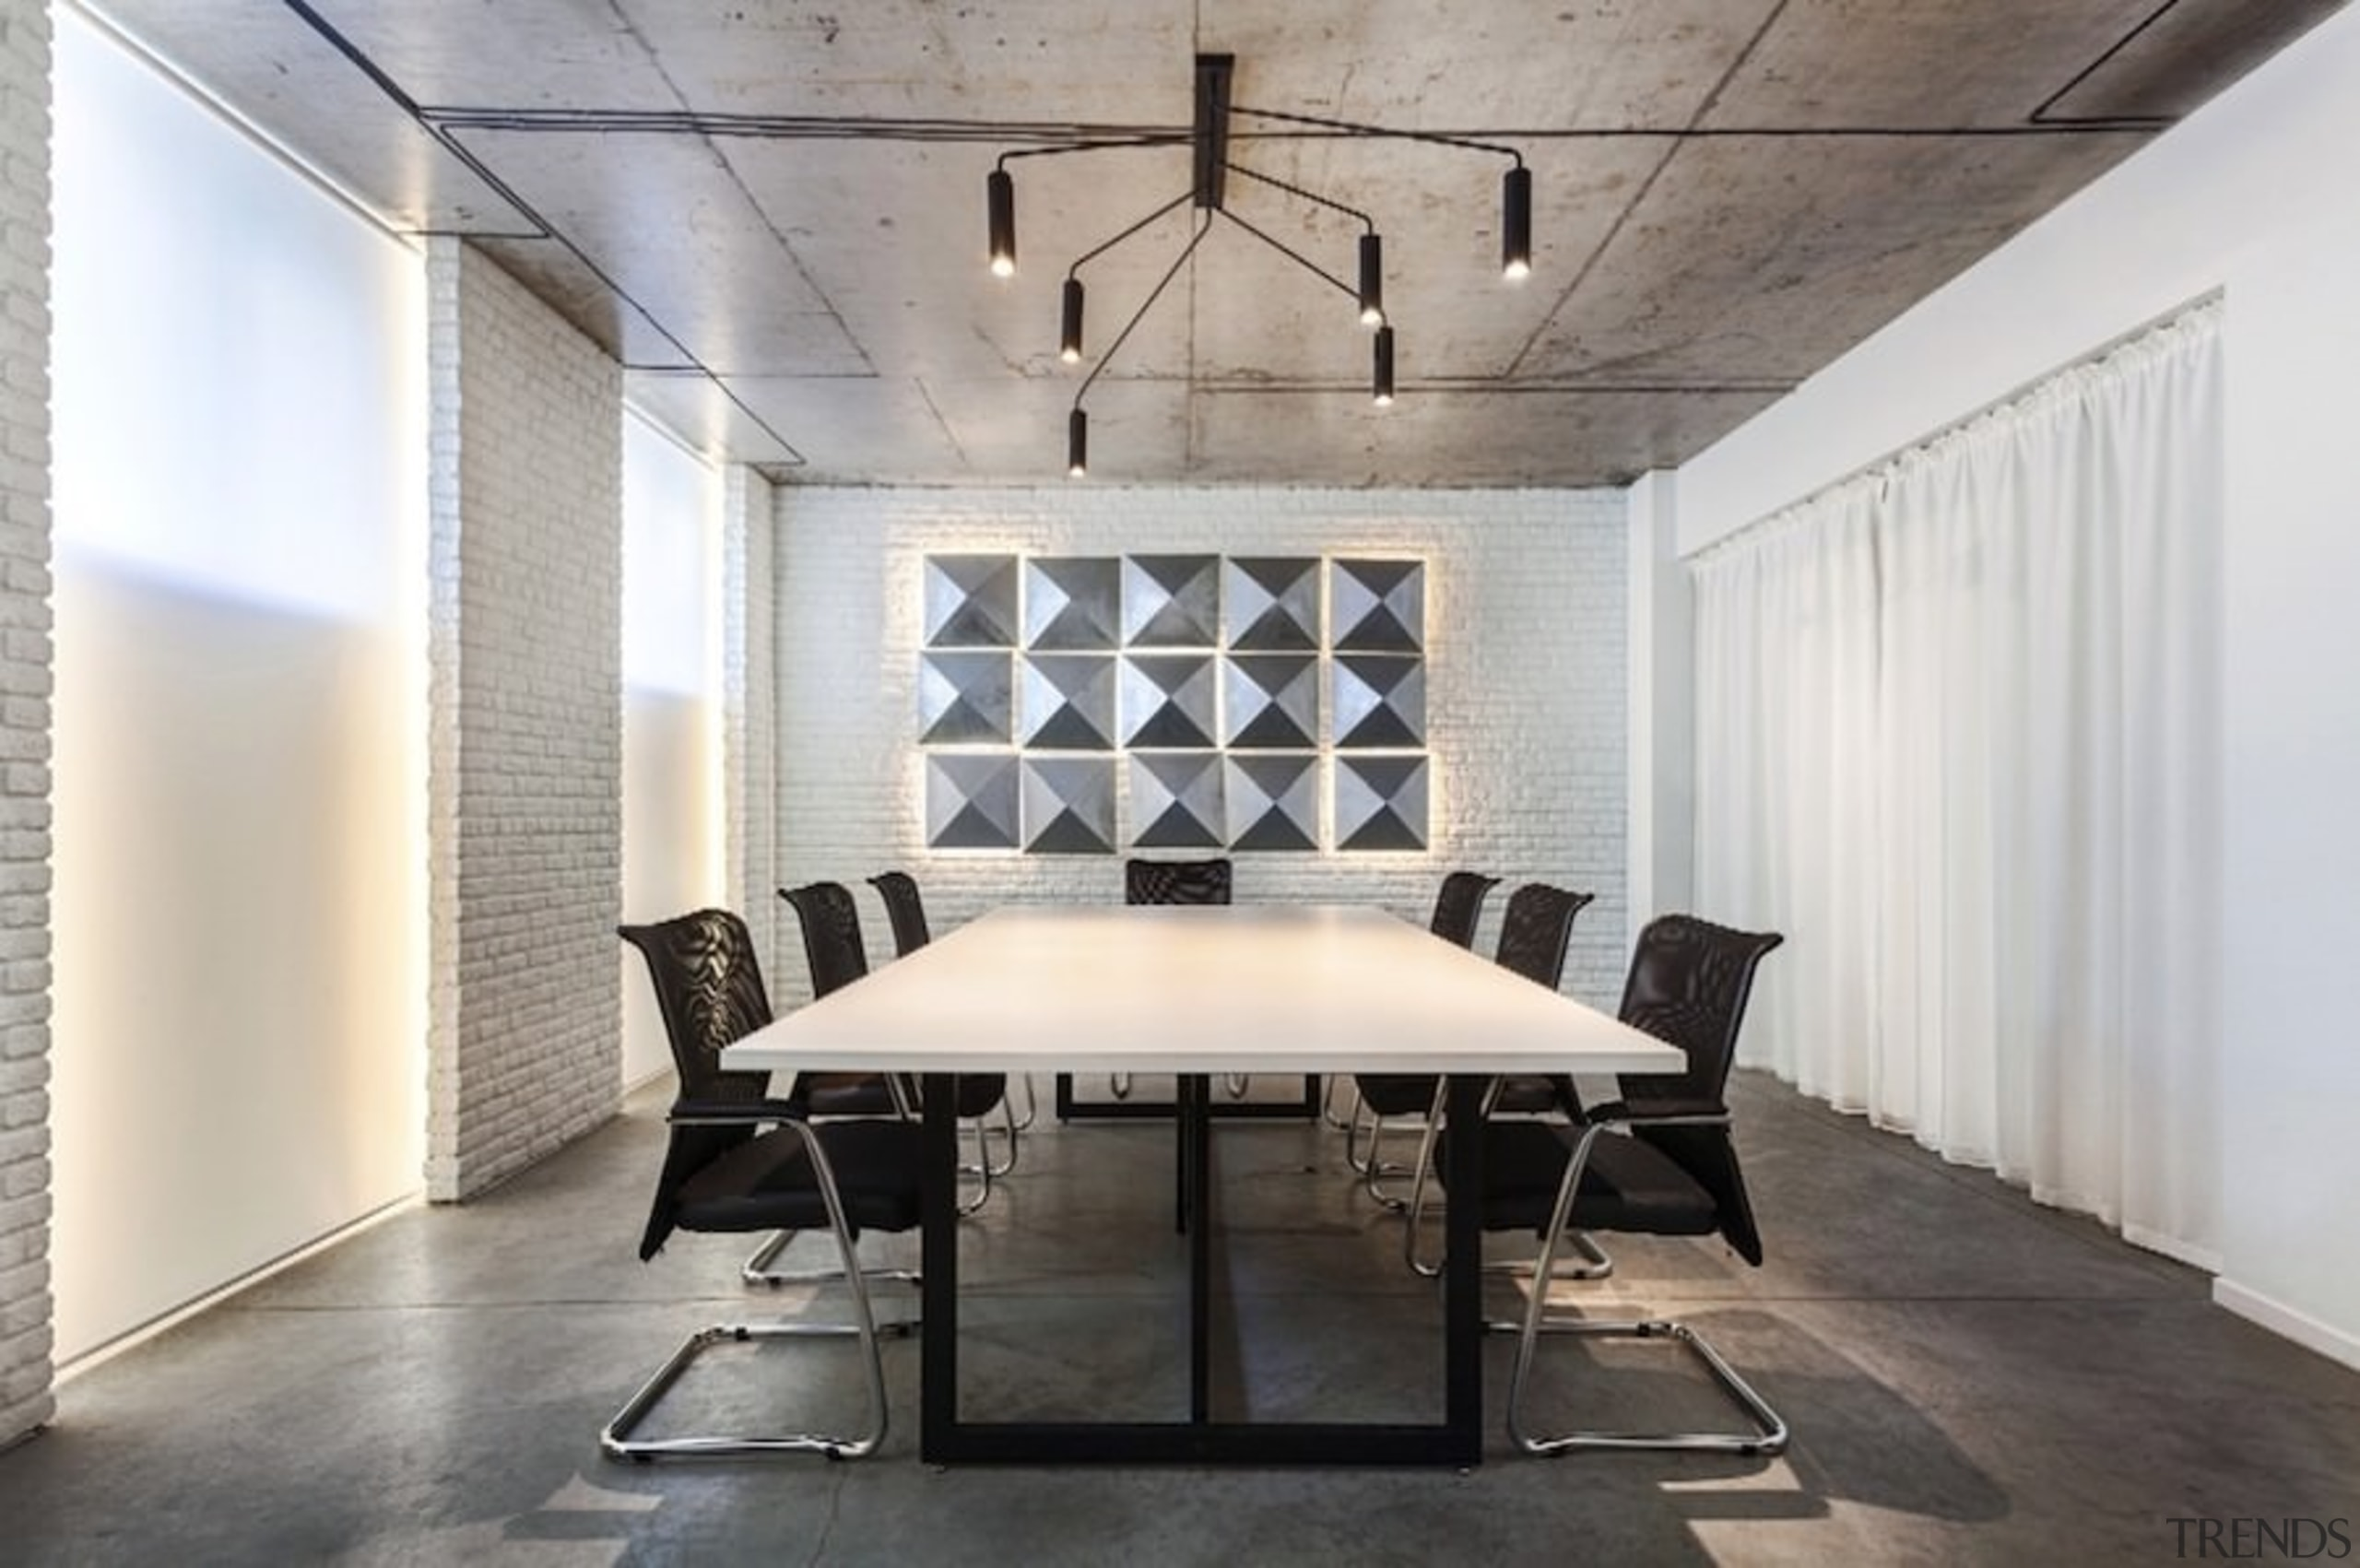 Architect: Martin Architects architecture, ceiling, daylighting, floor, flooring, furniture, interior design, product design, table, wall, gray